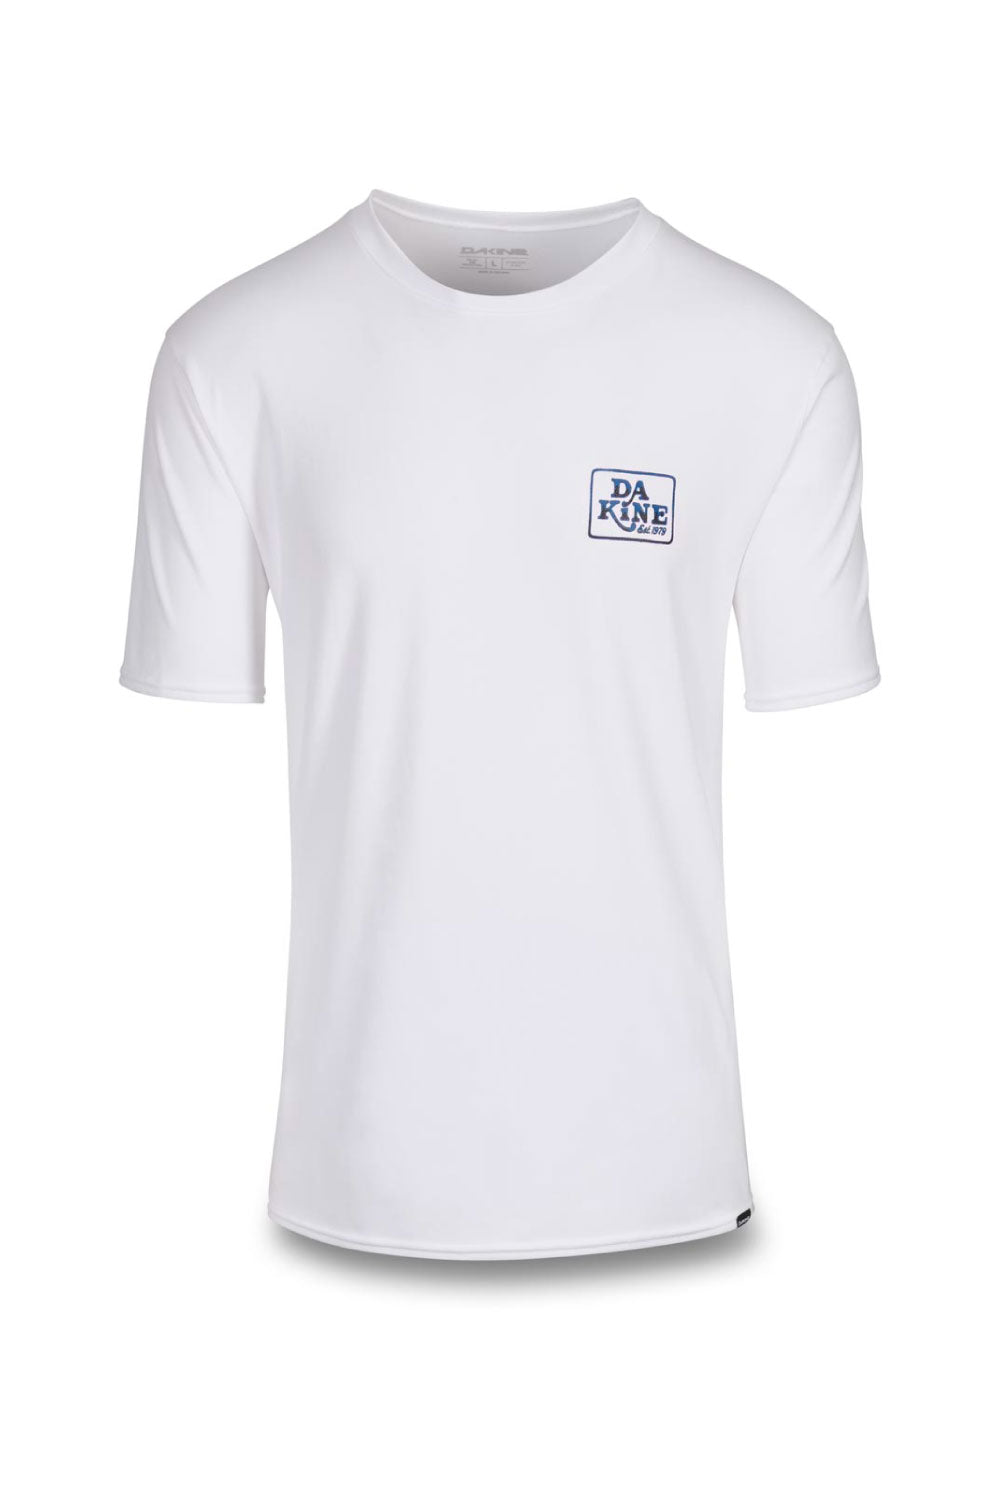 Dakine Inlet Loose Fit Short Sleeve Rashshirt White